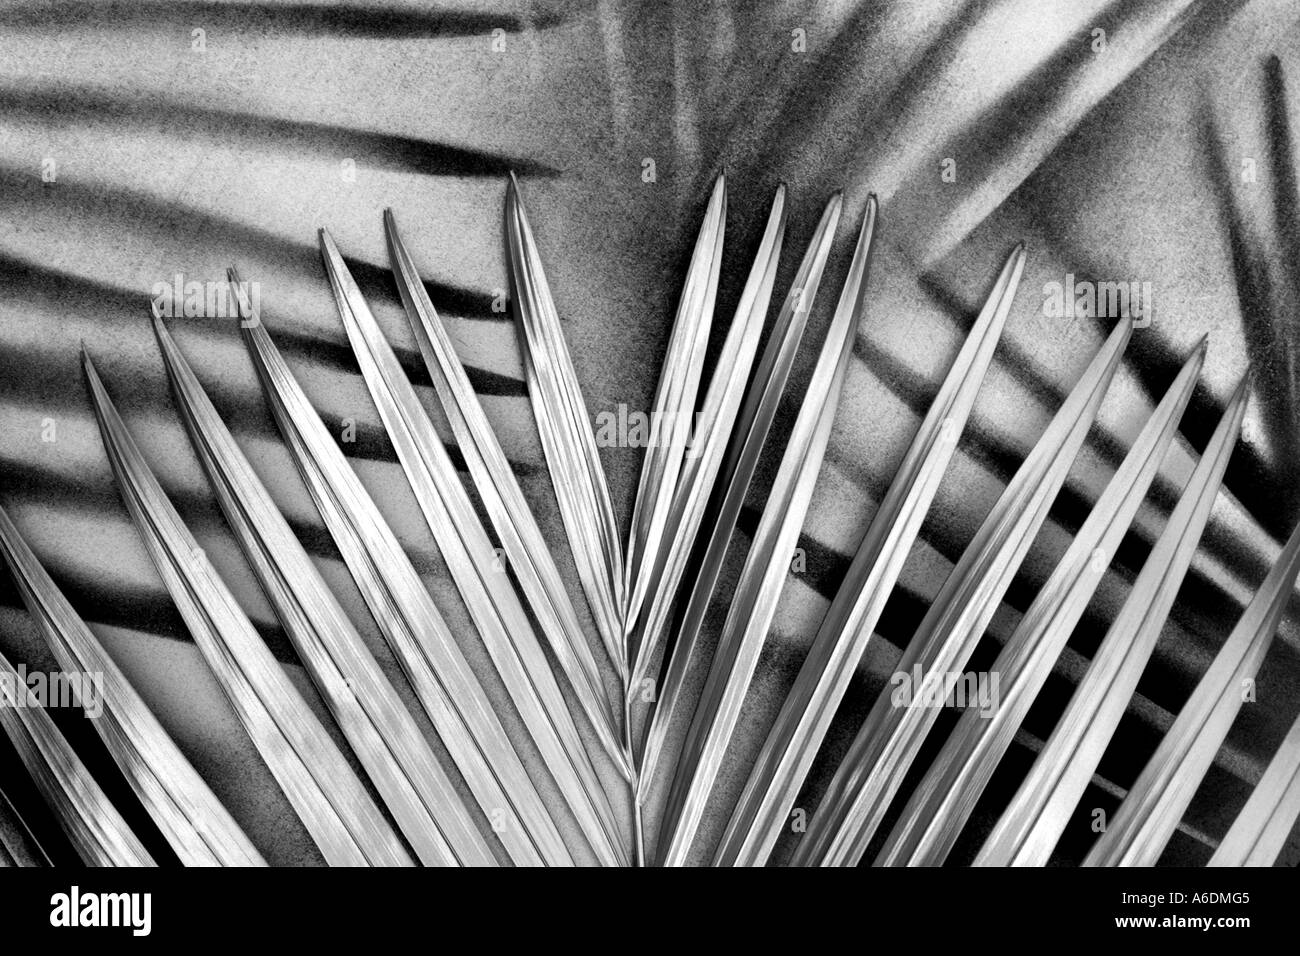 SILVER PALM FROND BAPDB5963 - Stock Image